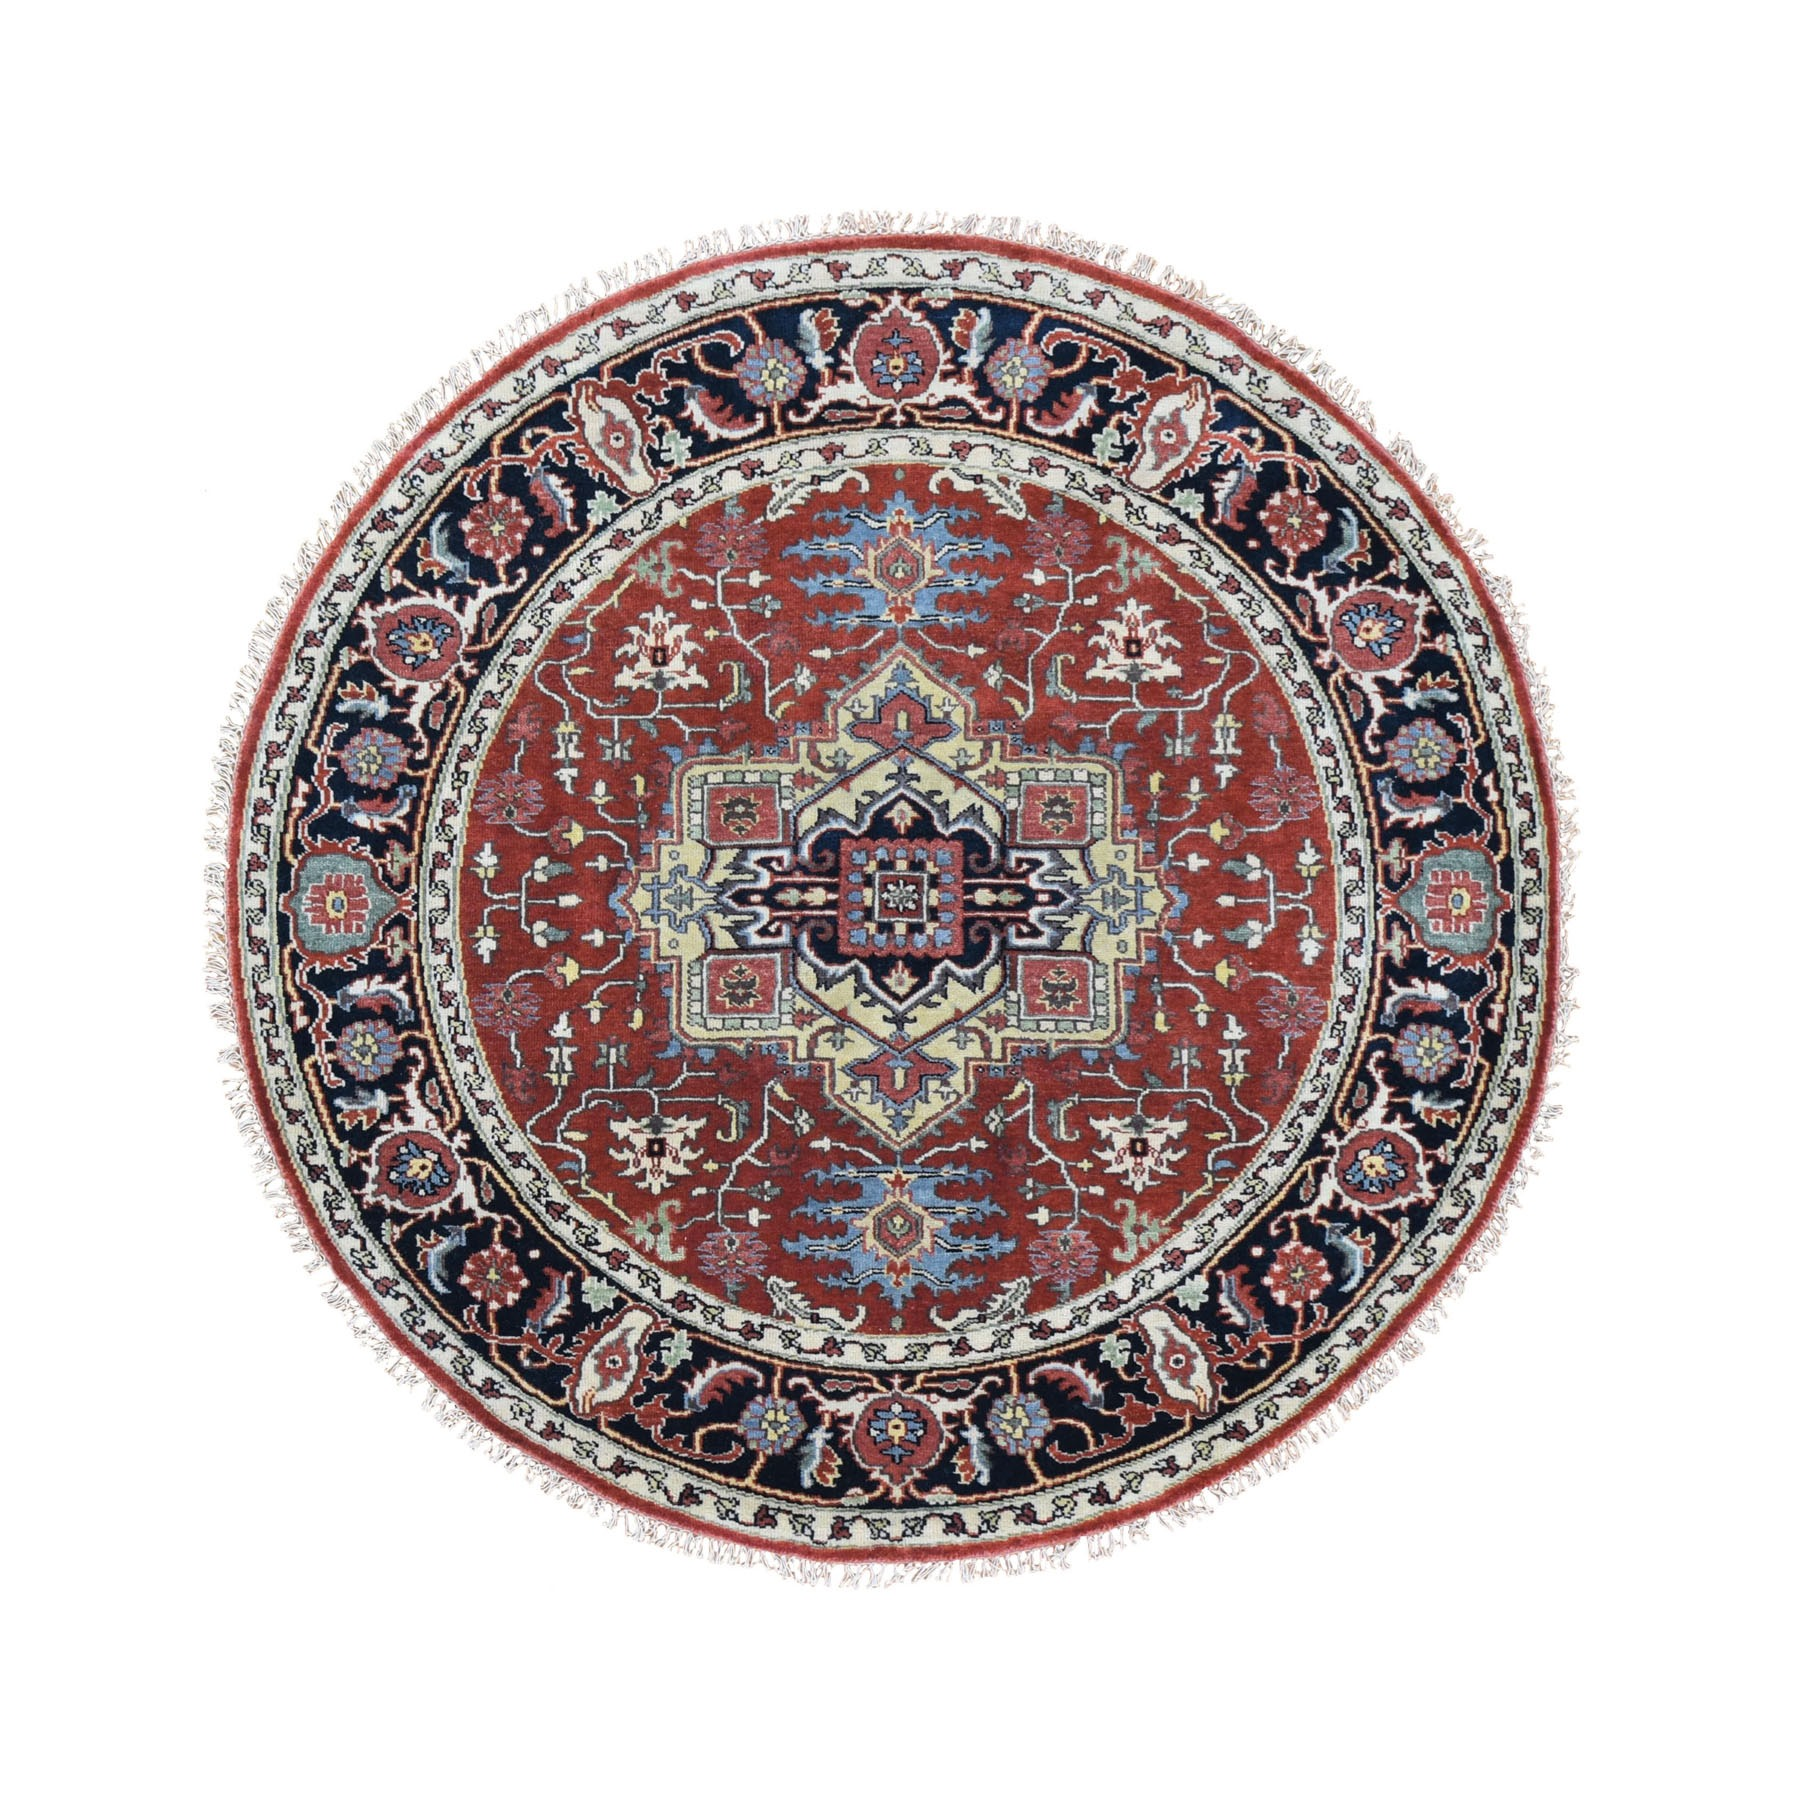 6'X6' Round Red Heriz Revival Pure Wool Hand Knotted Oriental Rug moad868a